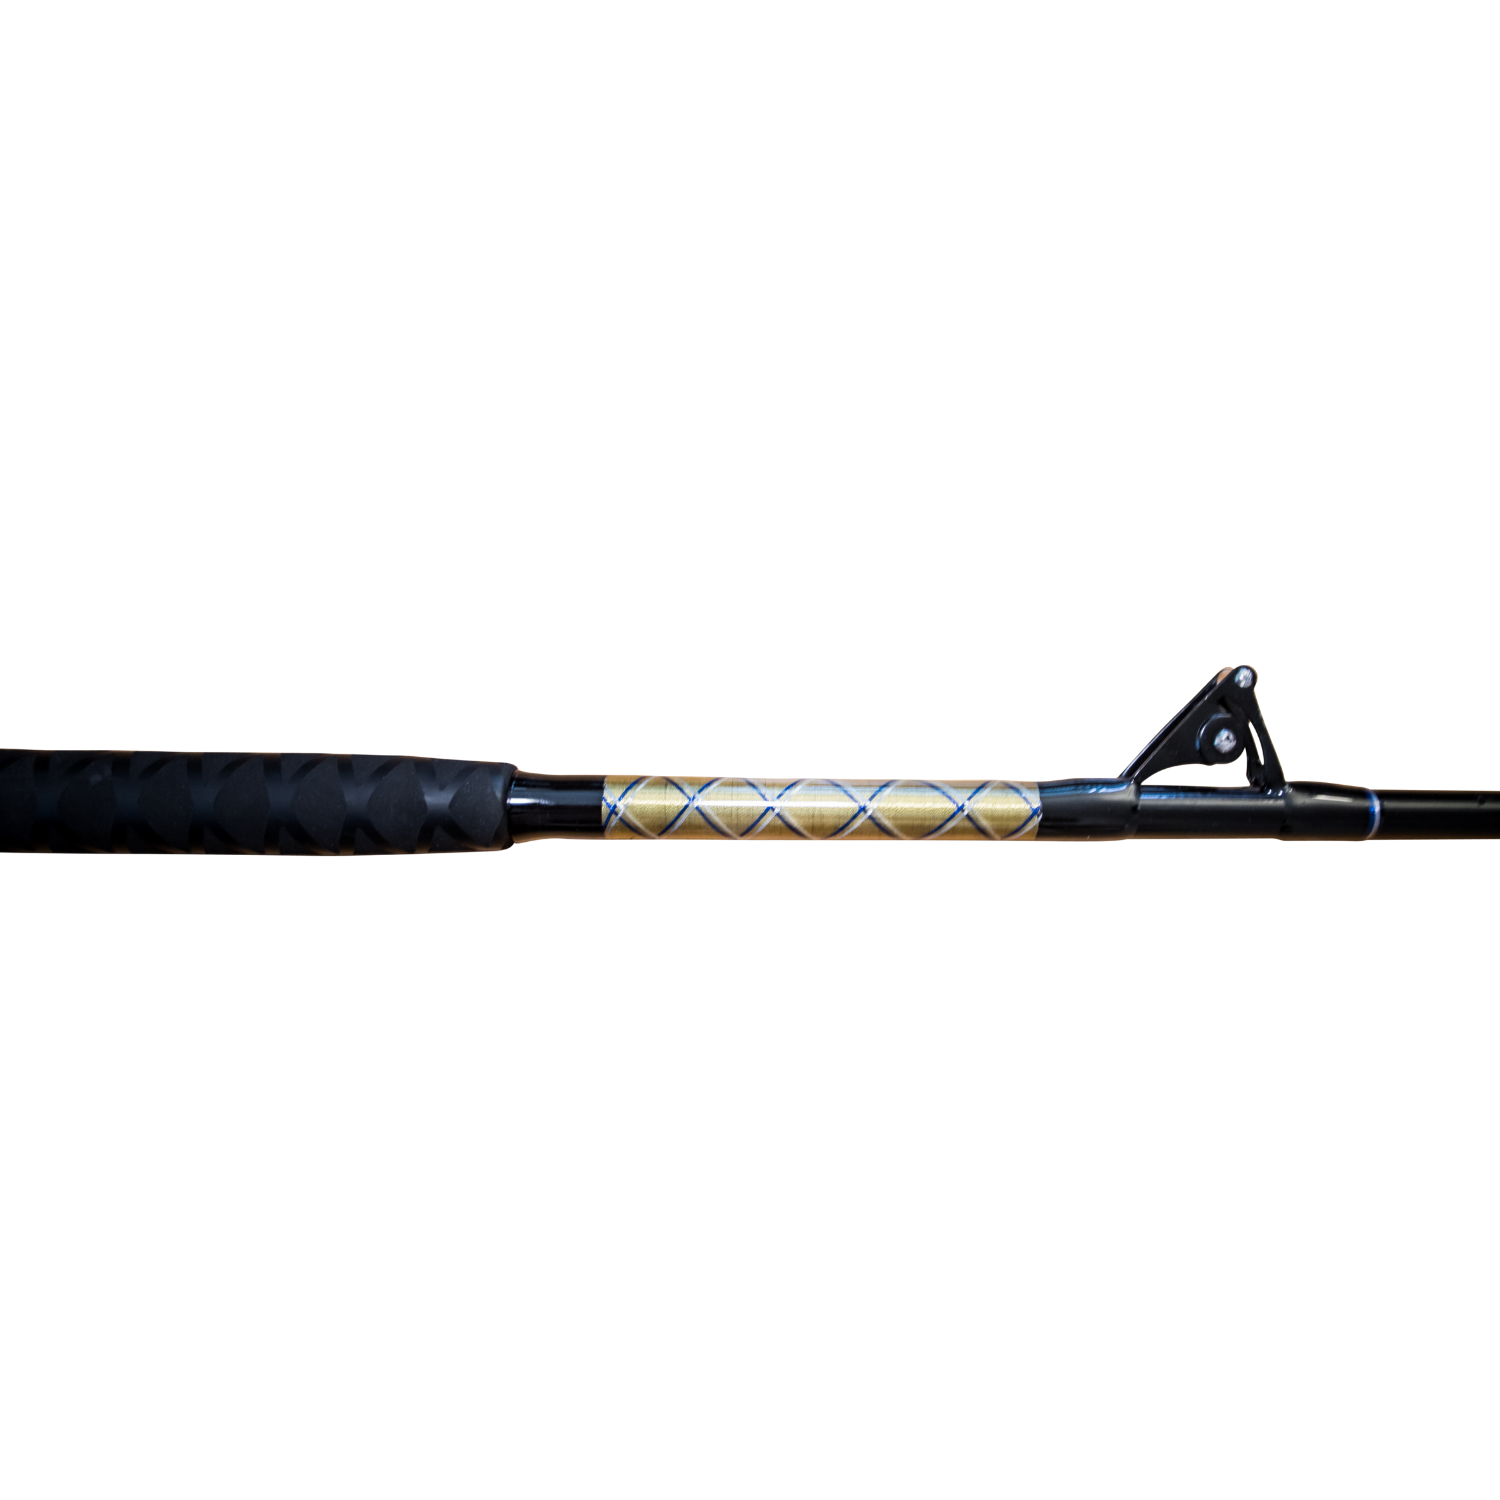 80-100 Hybrid Saltwater Fishing Rod - Standup & Trolling